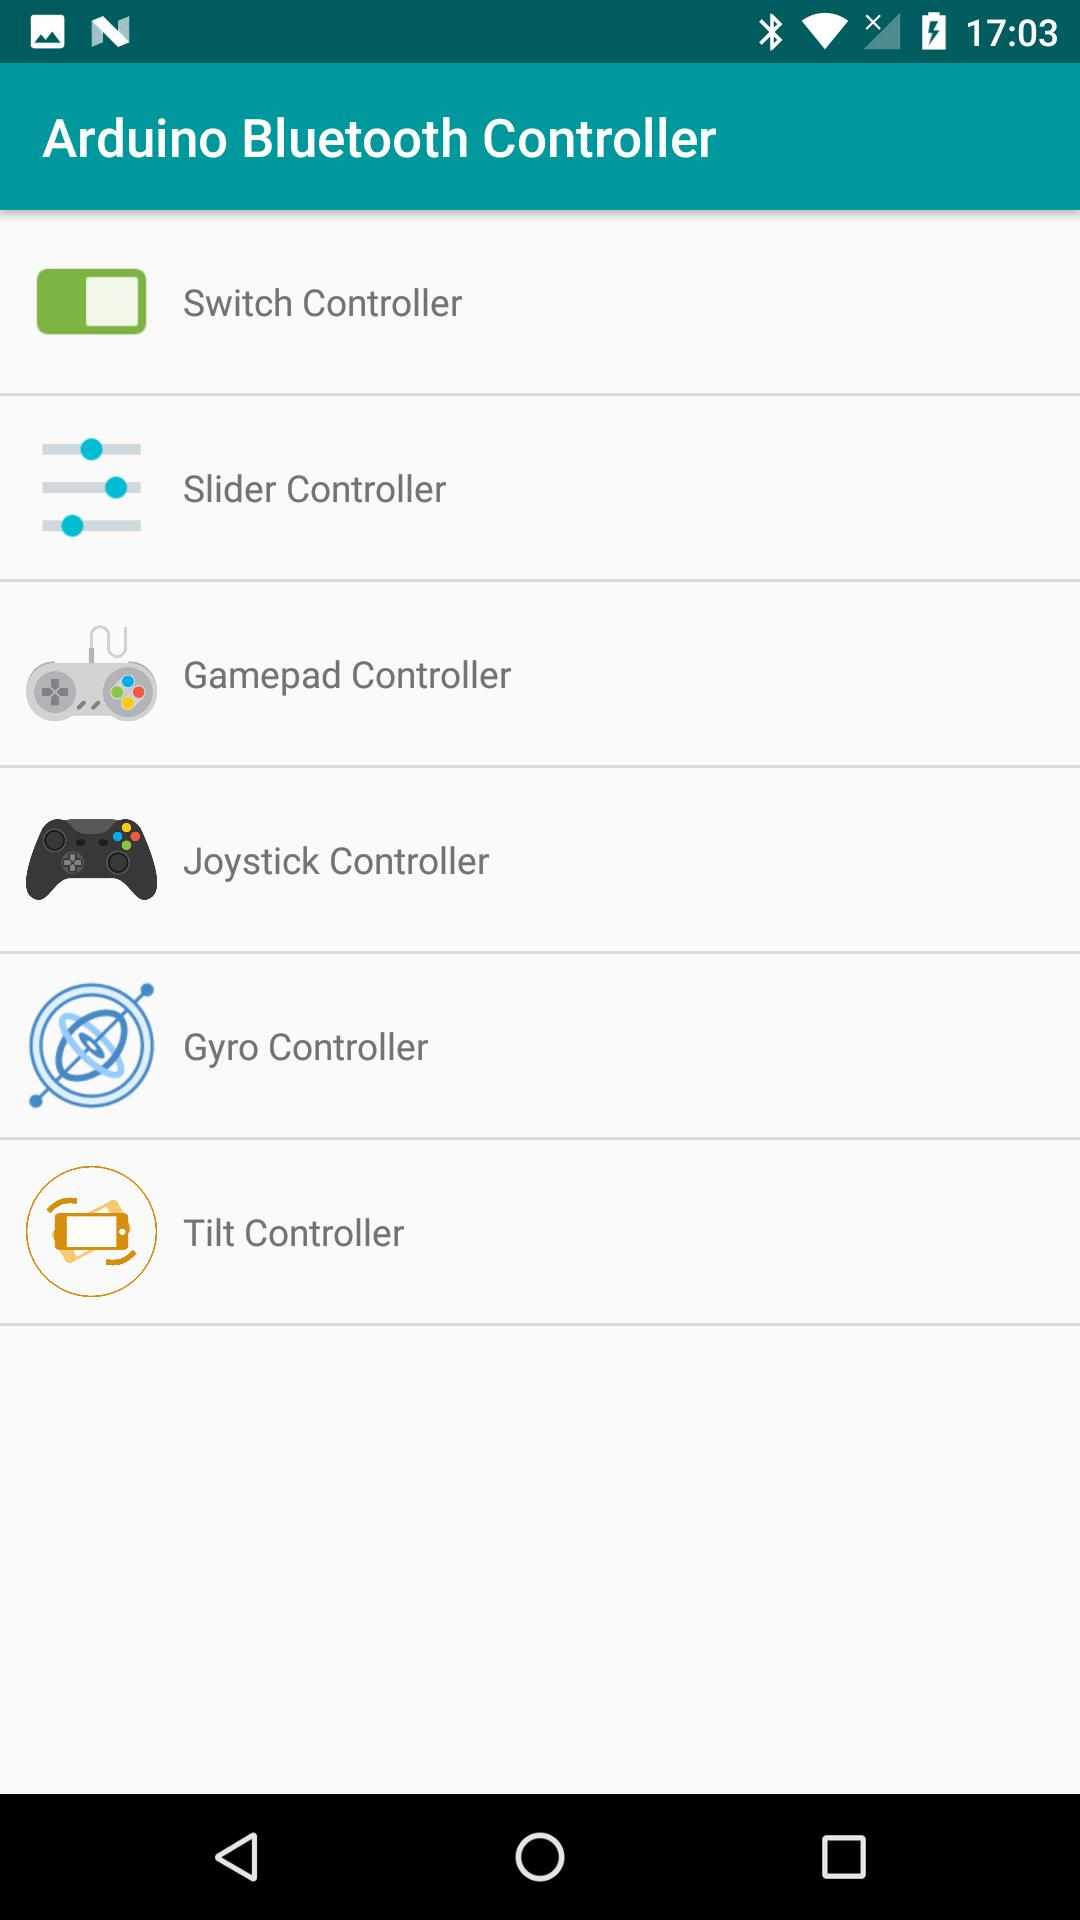 Bluetooth Remote Control For Arduino for Android - APK Download